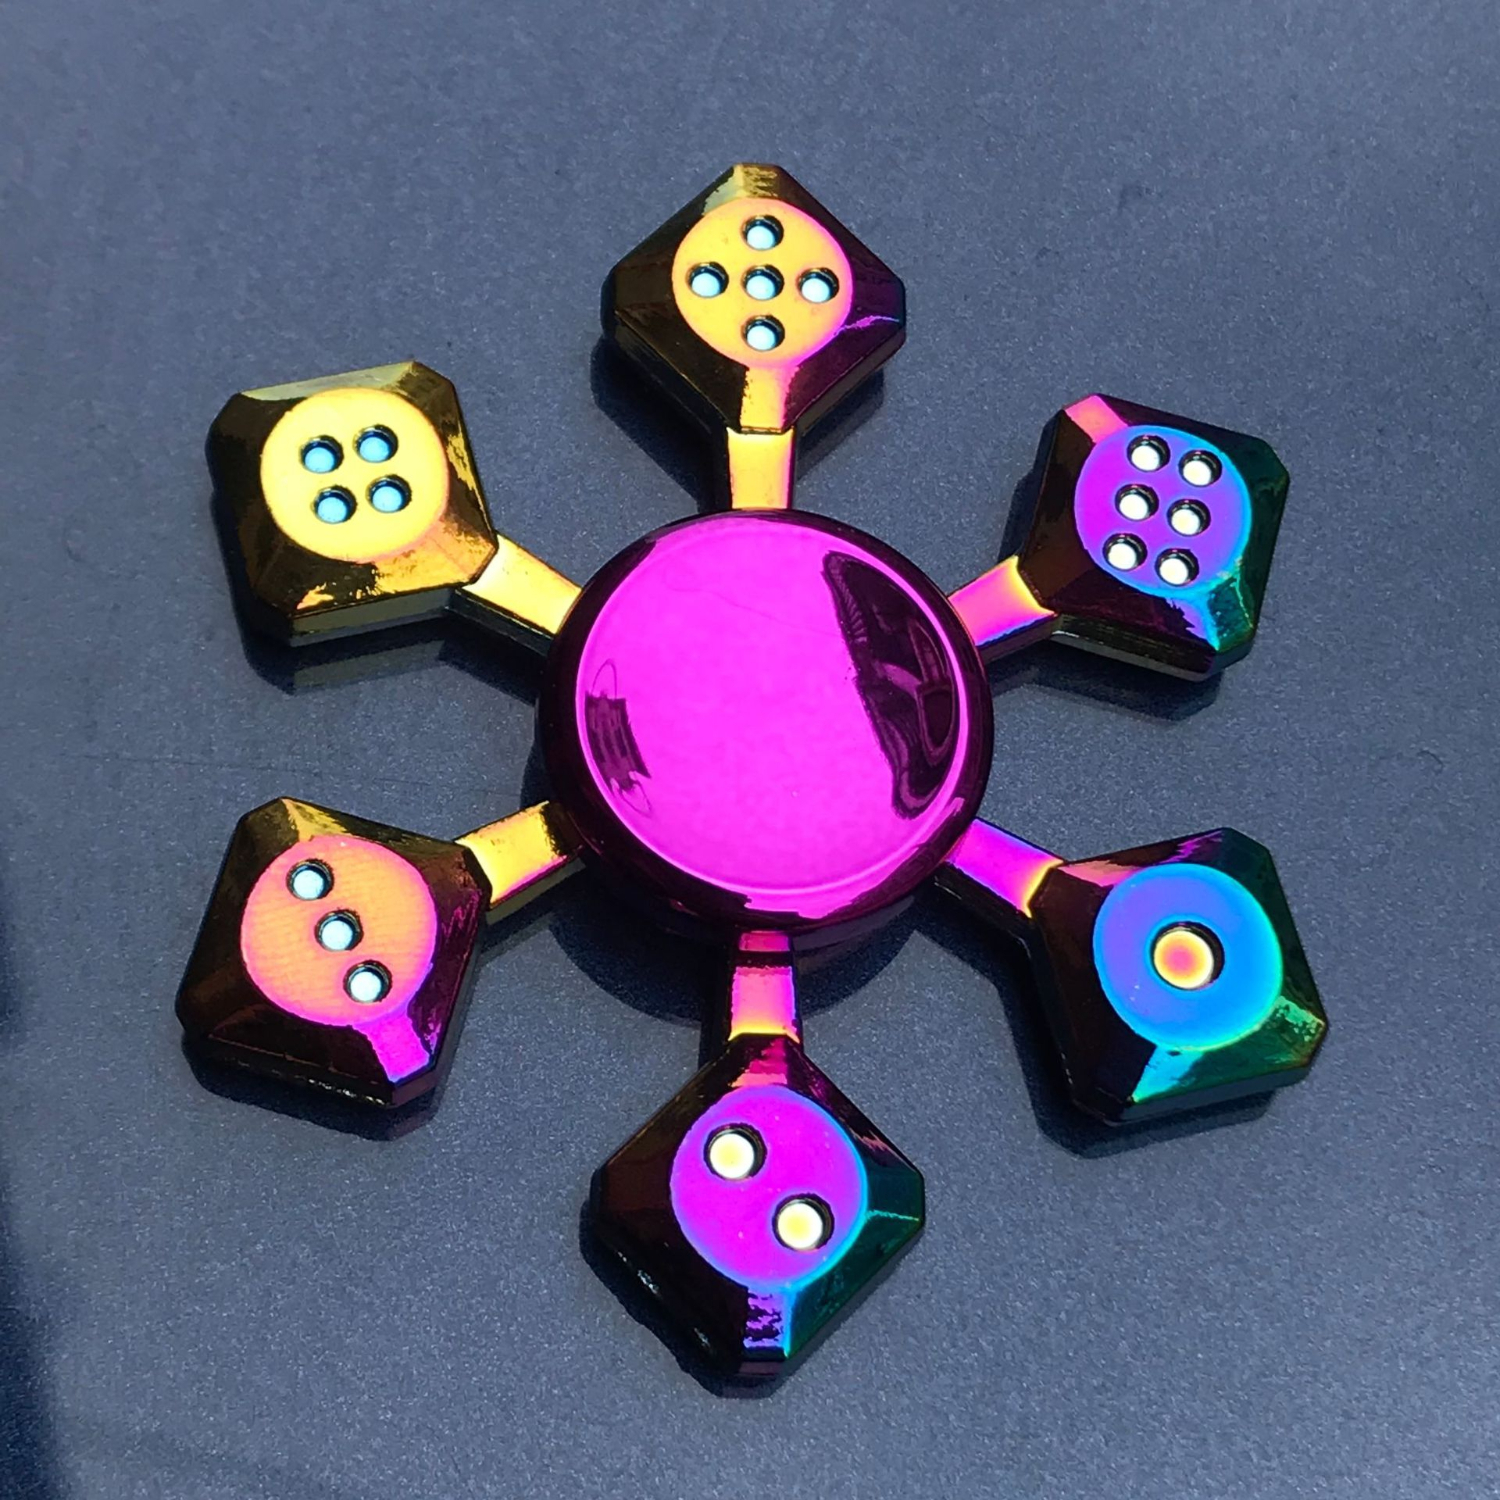 Rainbow Plating Hand Spinner Fidget Spinner Metal Finger Spiner Flower Shape Children Adult Anxiety Stress Relief Kinetic Toys